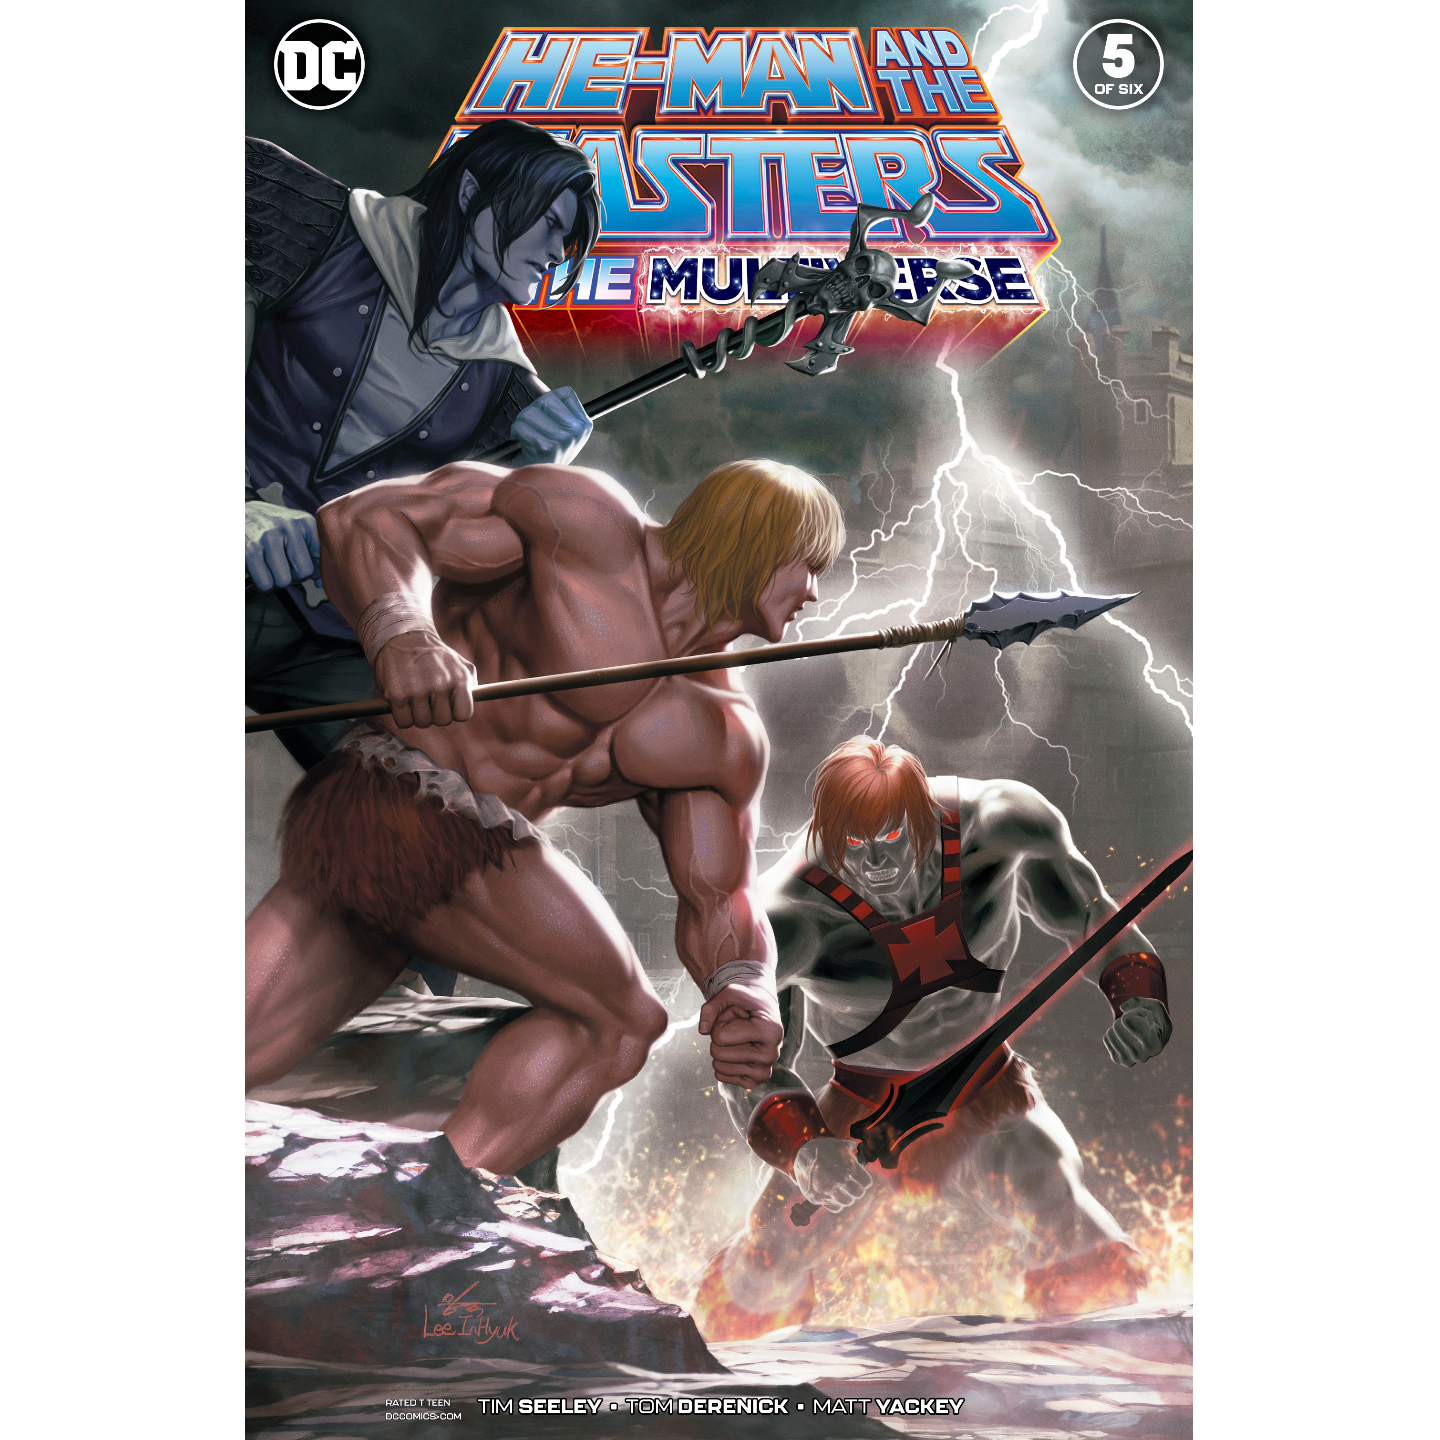 HE MAN AND THE MASTERS OF THE MULTIVERSE 5 OF 6